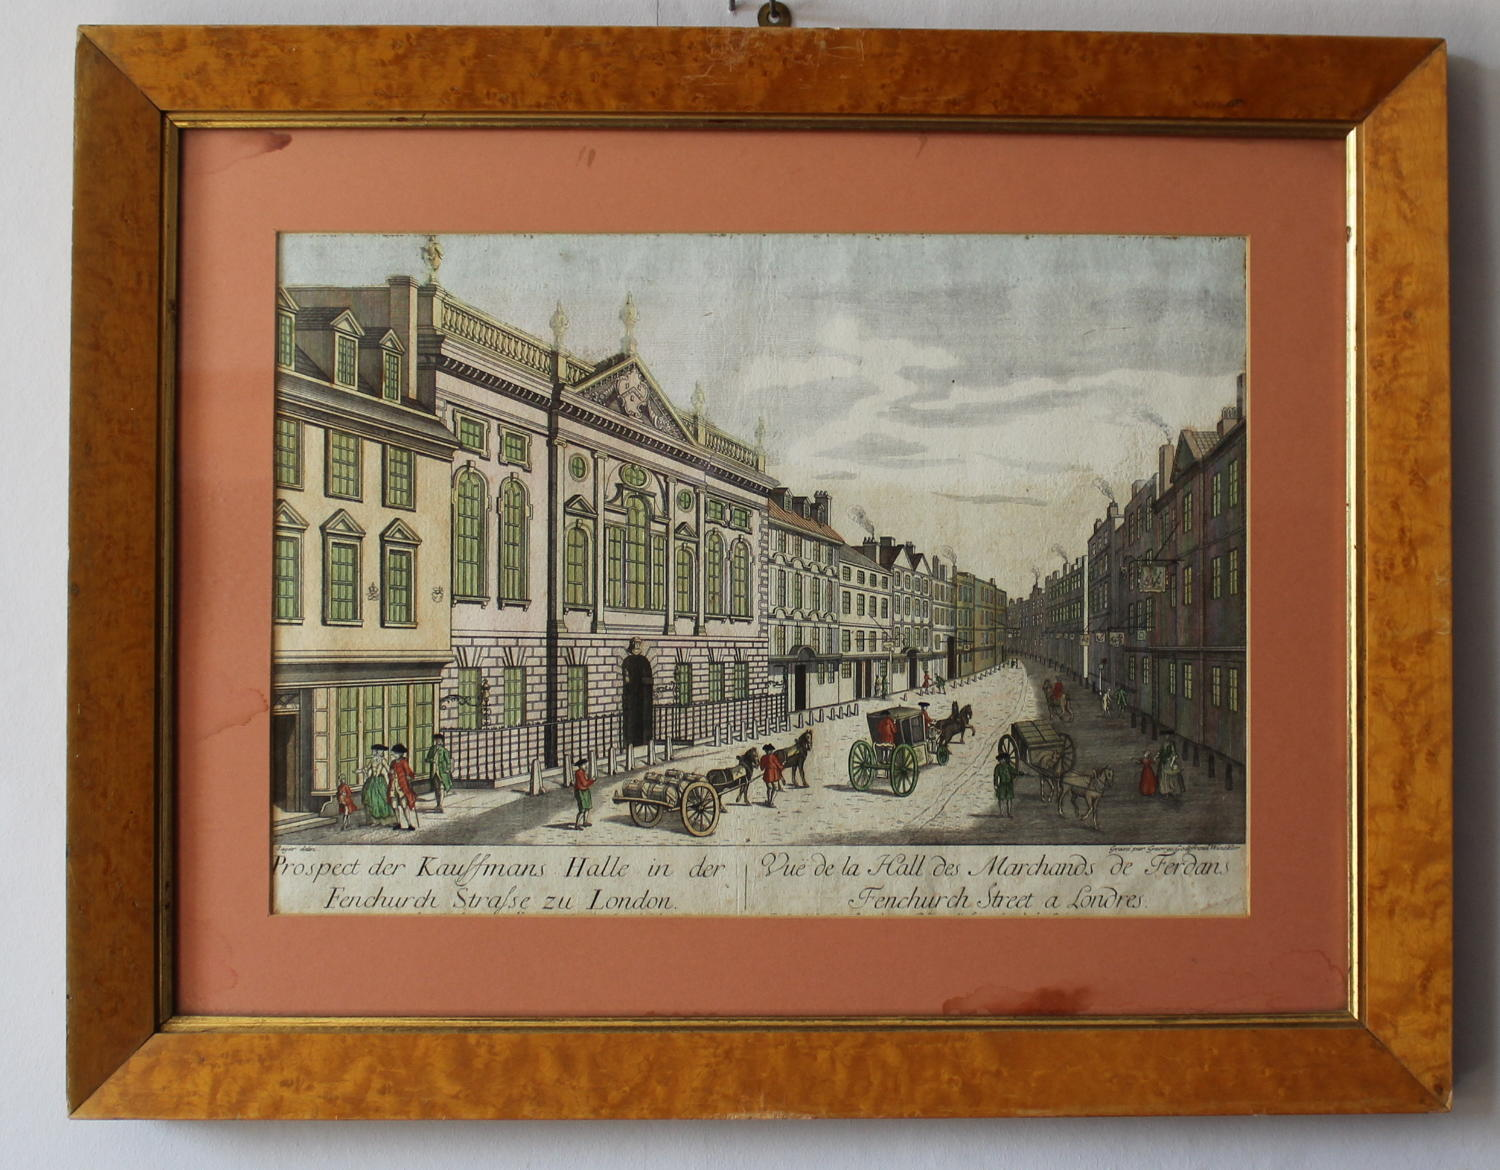 Winckler - Optical Print of Ironmongers Hall, Fenchurch St, London